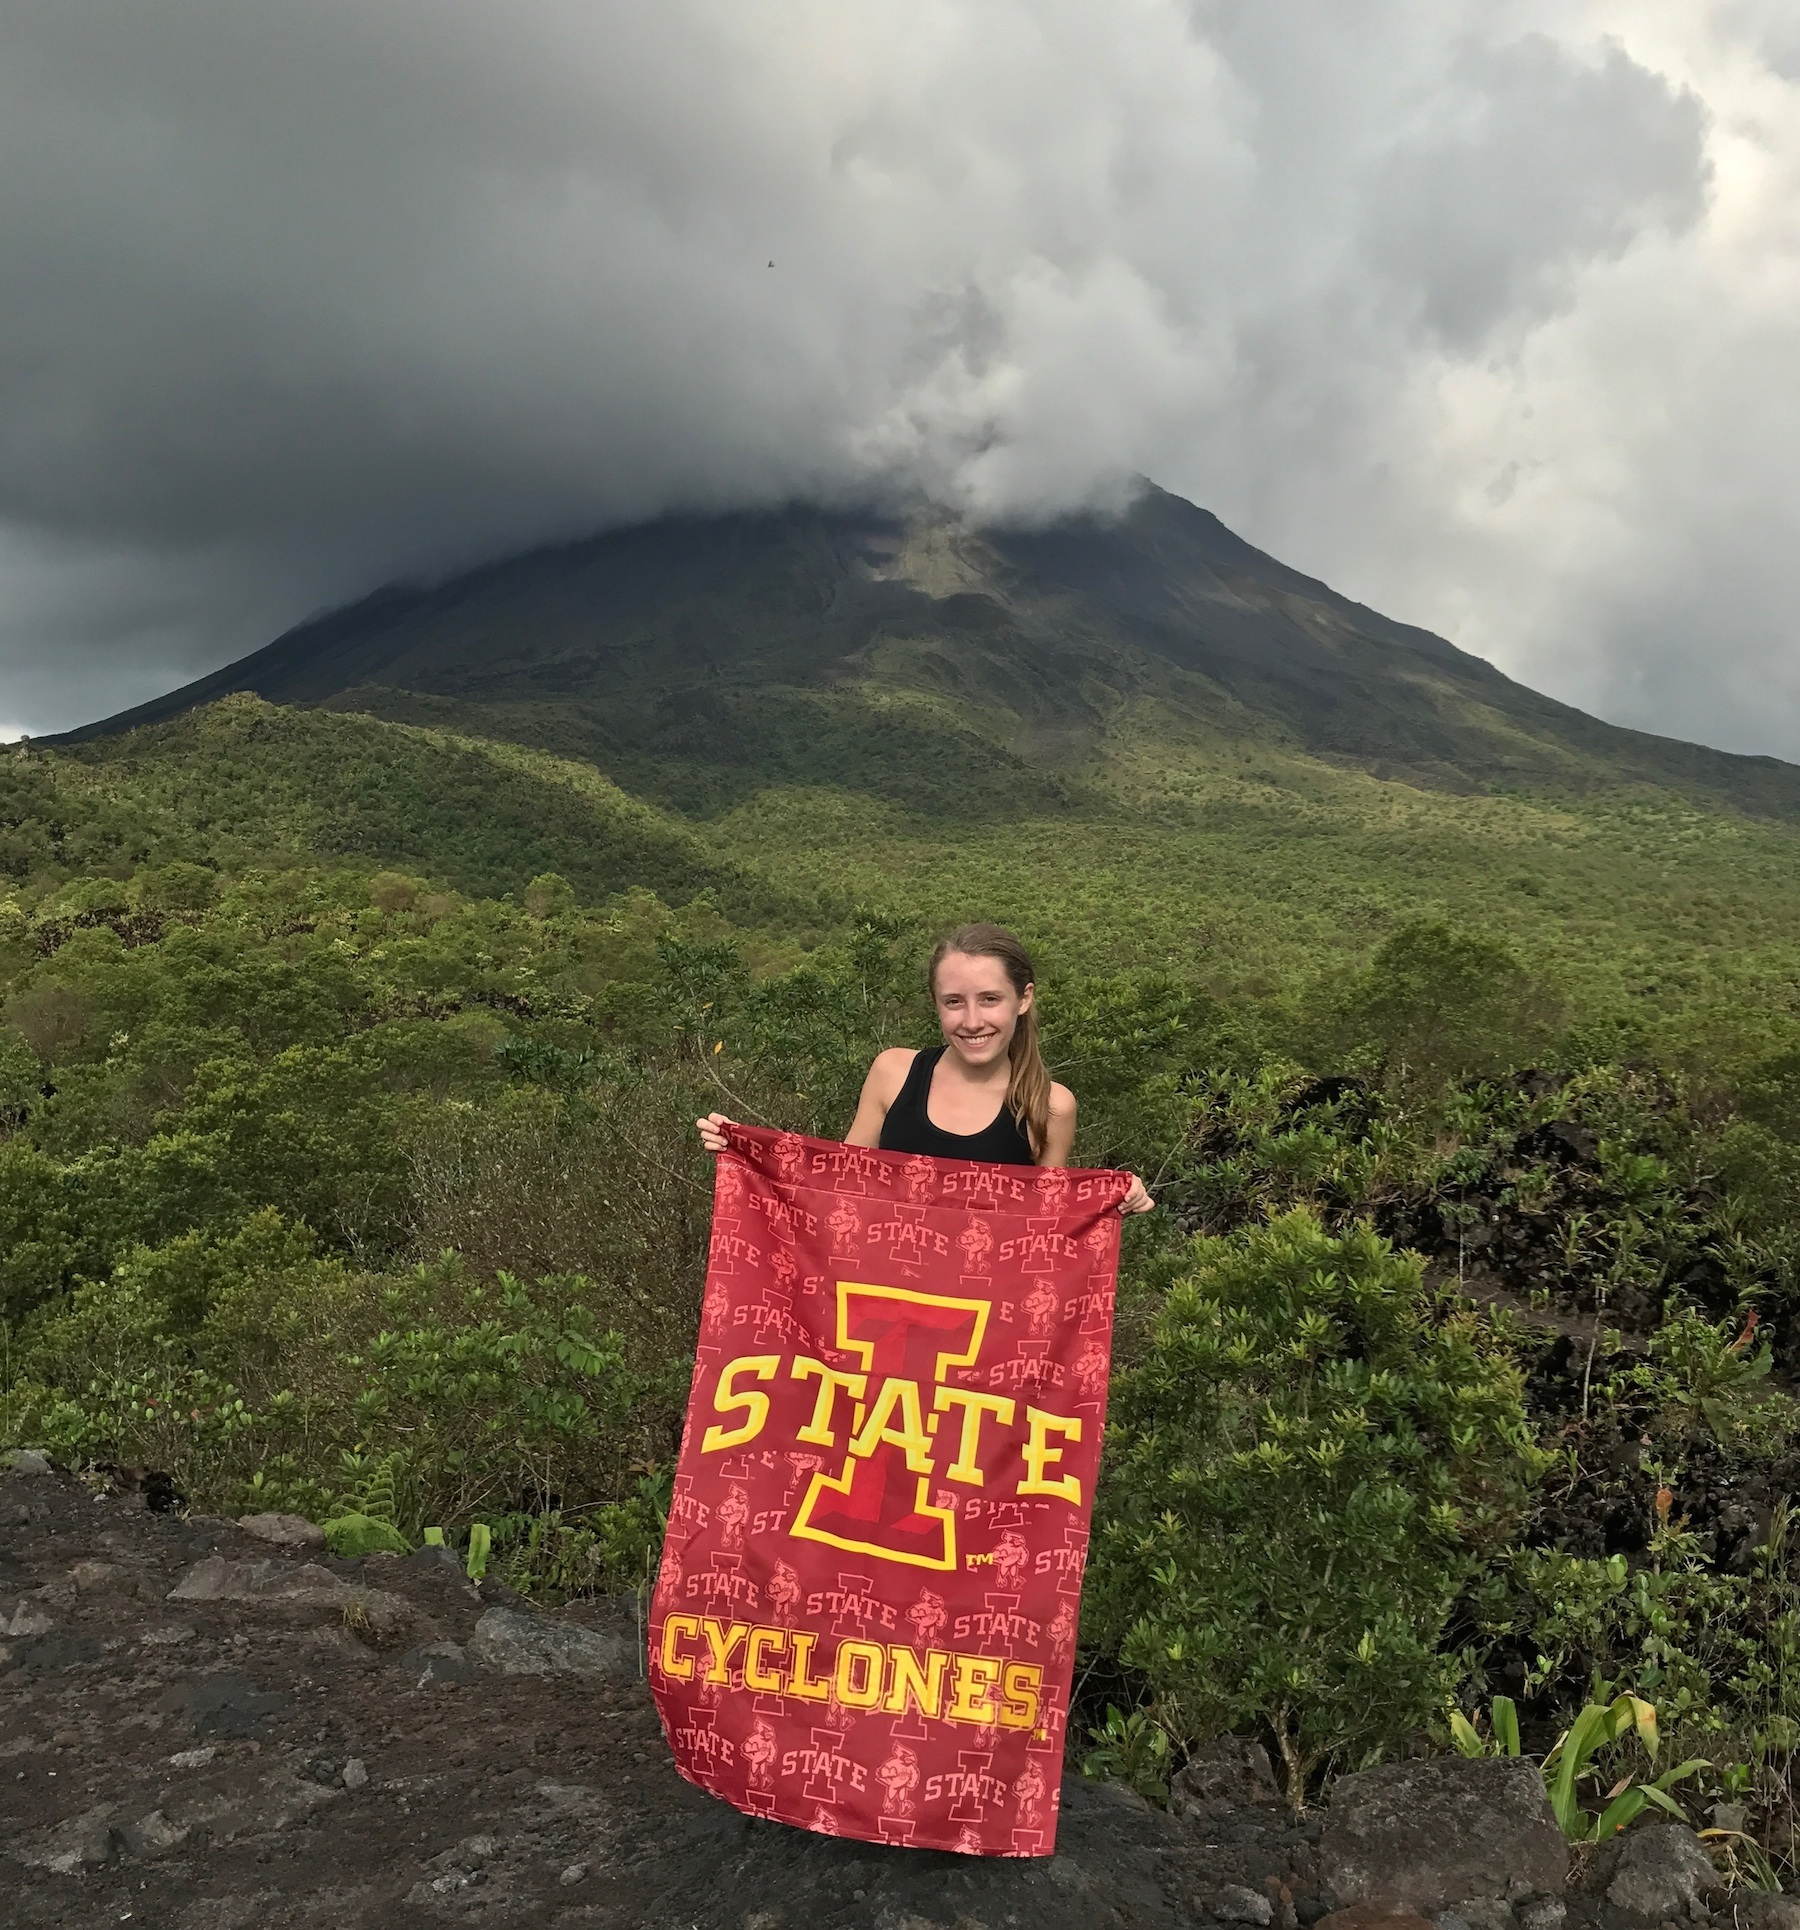 Emily Dux ('18 English) studied abroad in Costa Rica. This photo was taken on the summit of the most recent lava flow of Arenal Volcano in Costa Rica.